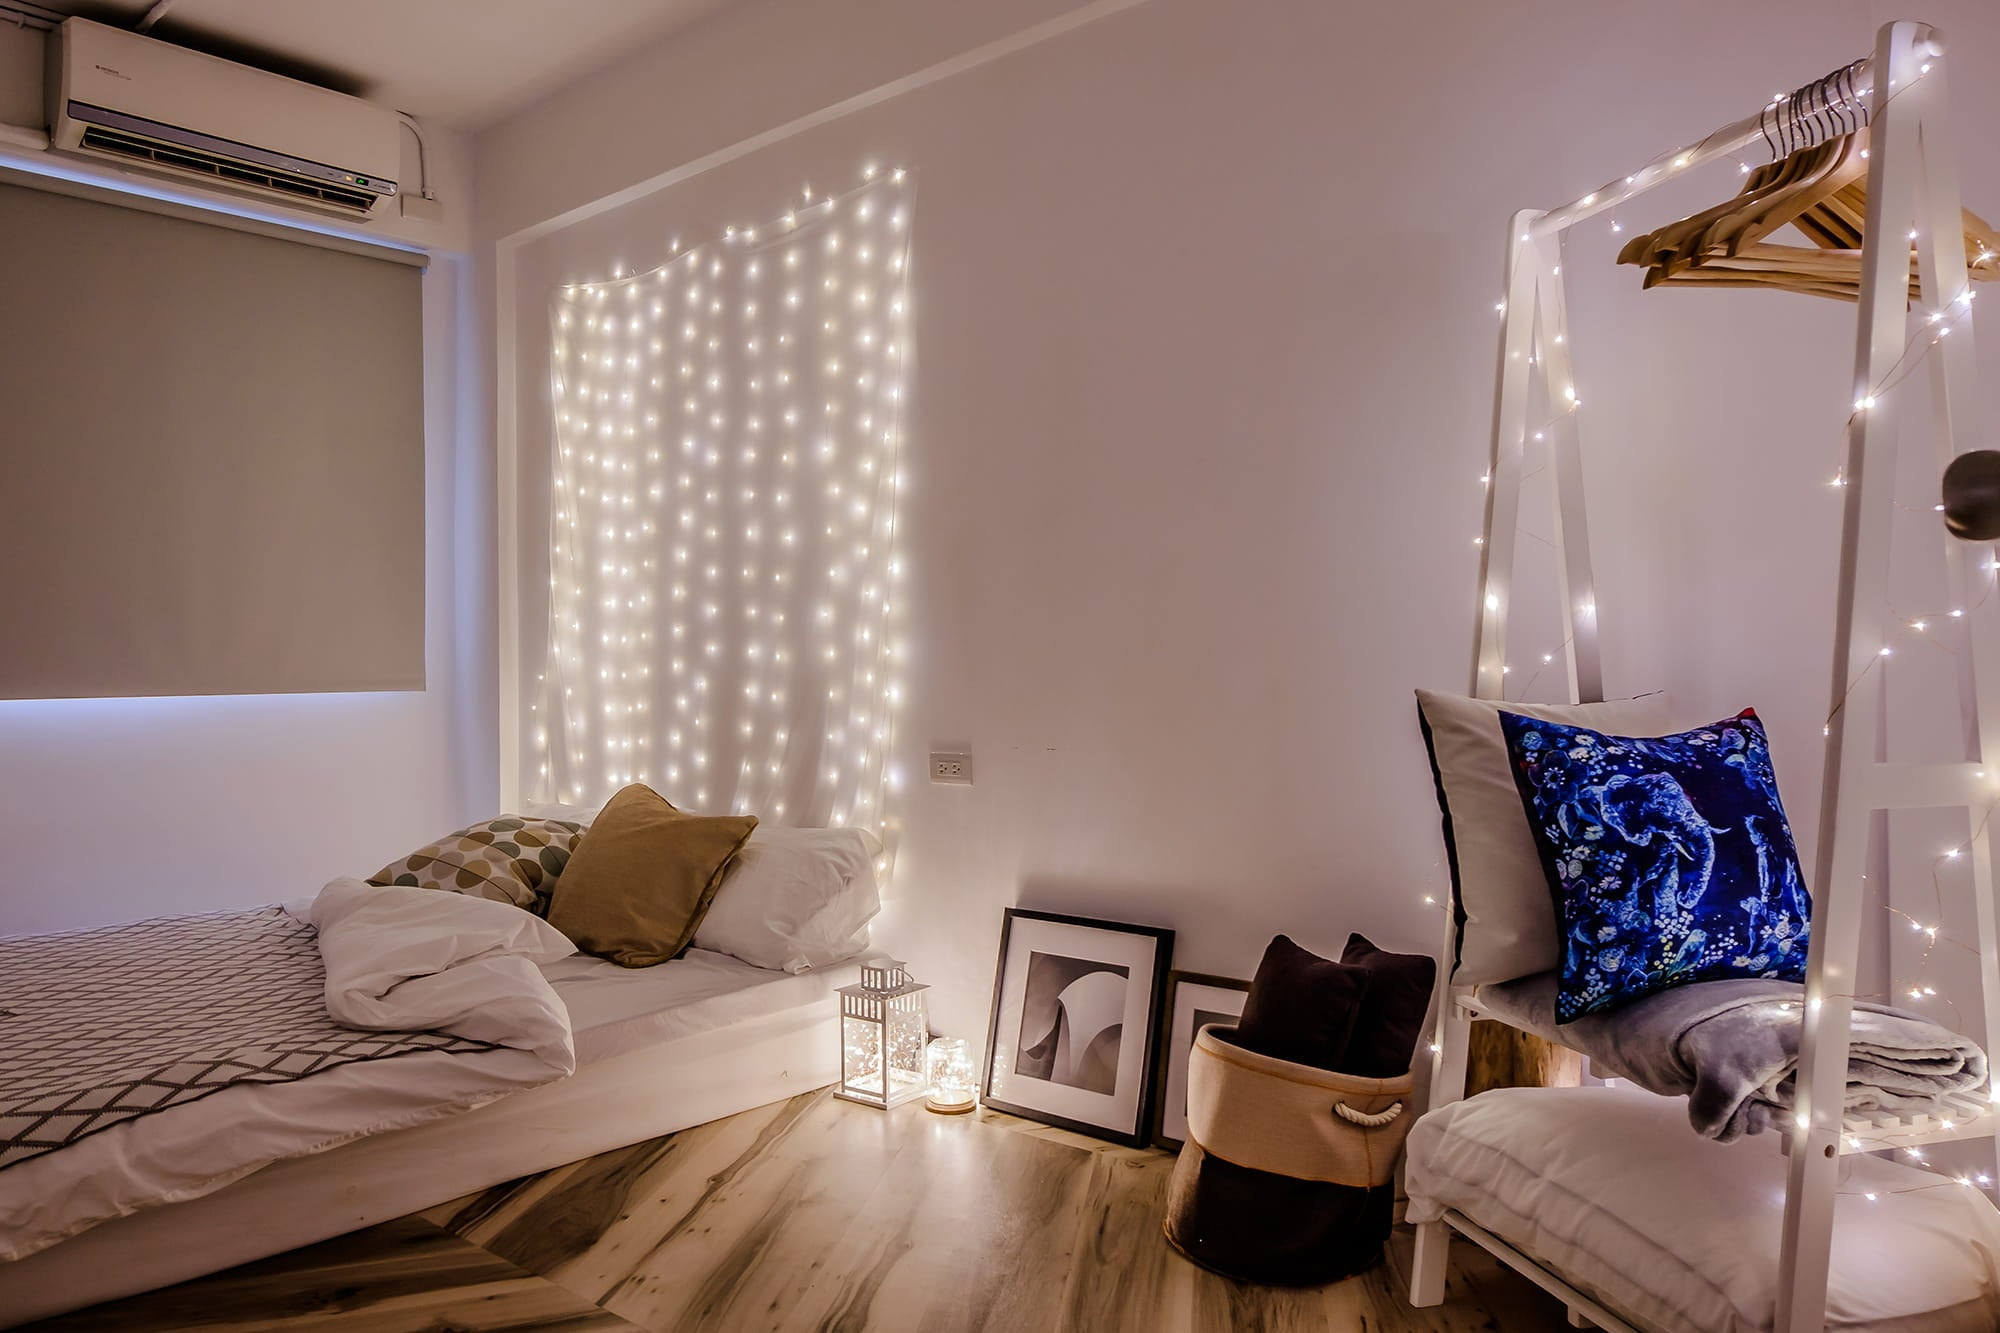 ROOMDECOR: fairy light wall kit to set a wall of stars and brighten up the space.